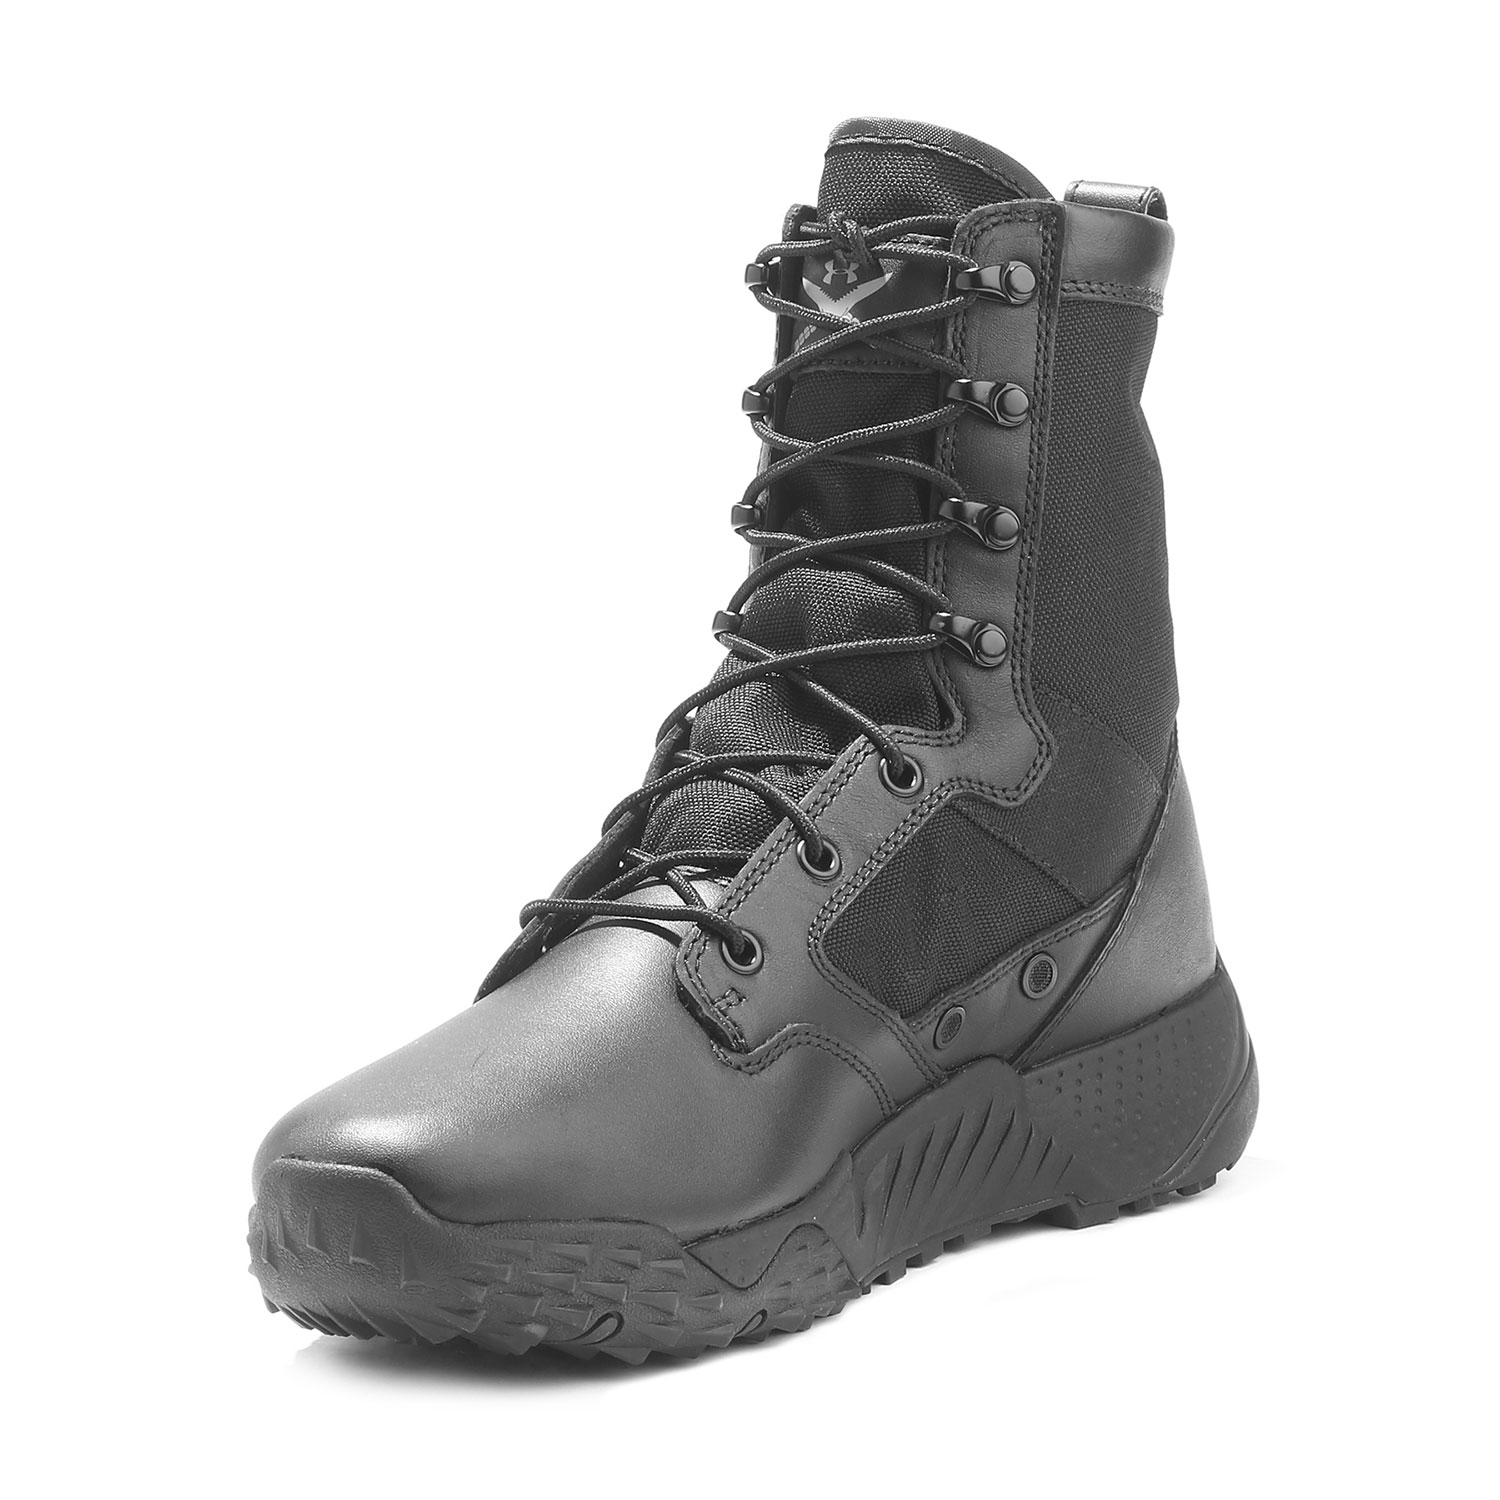 7195bfb2a83 Under Armour 8